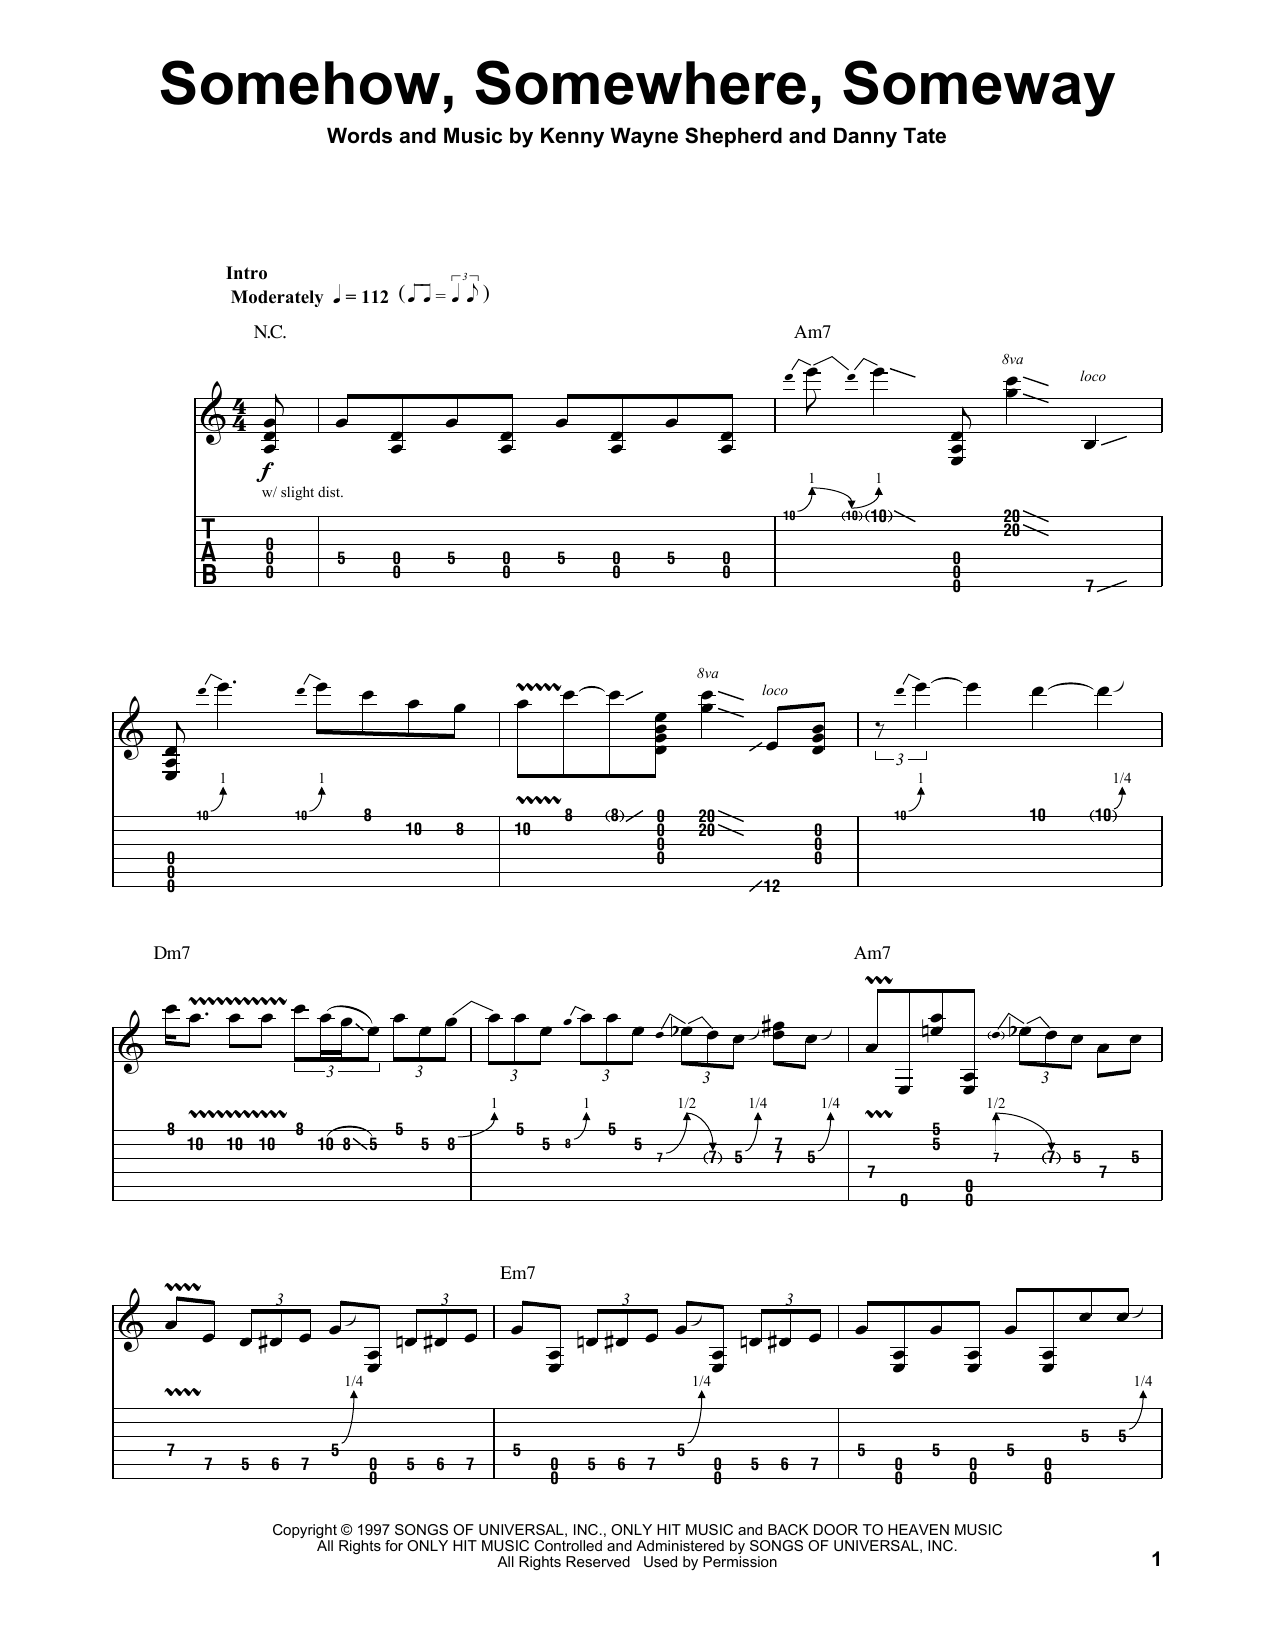 Somehow, Somewhere, Someway Sheet Music